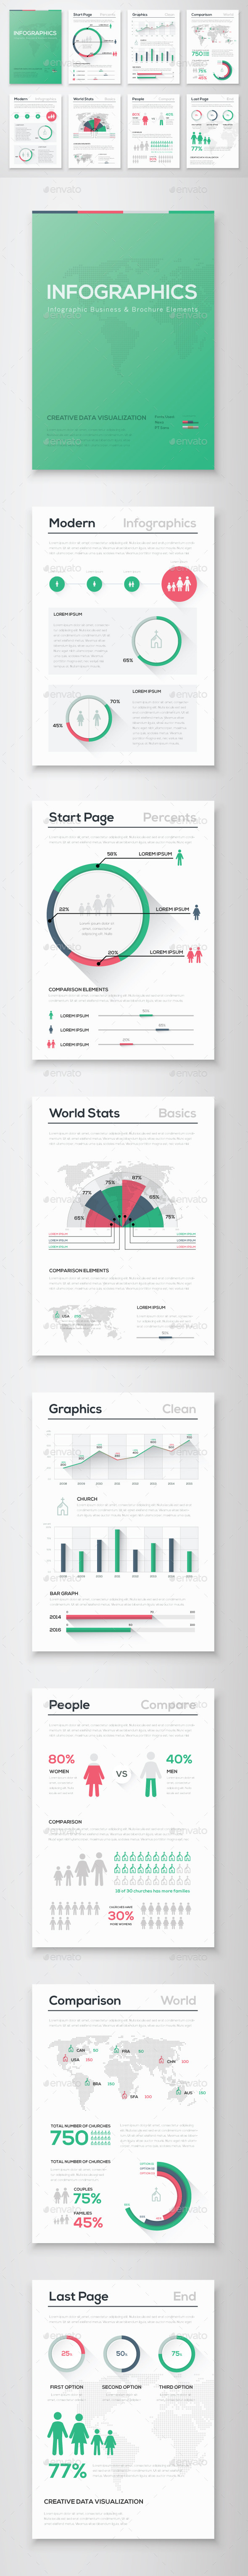 GraphicRiver Infographic Brochure Vector Elements Kit 8 11063117